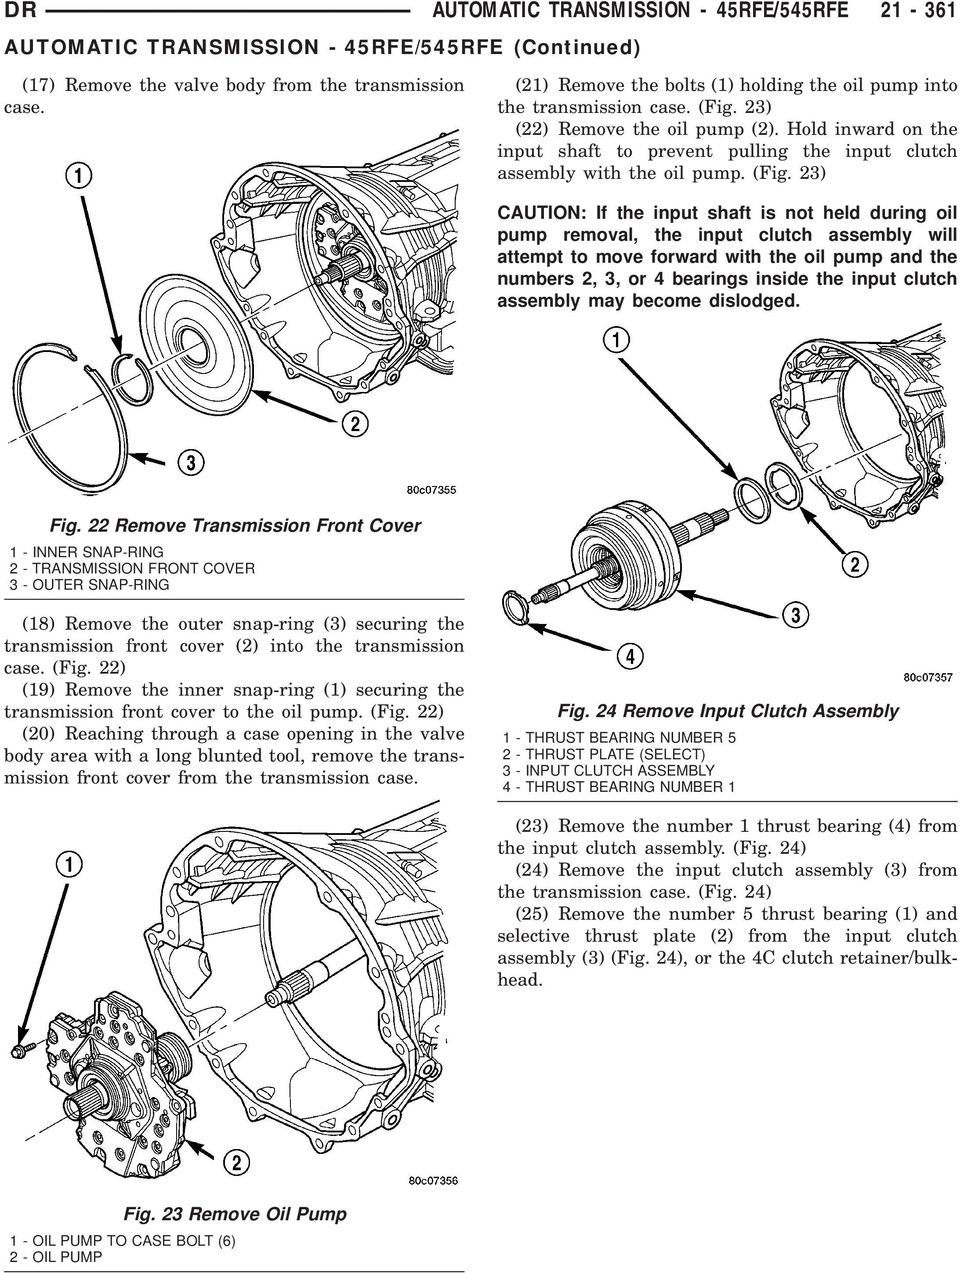 Automatic Transmission 45rfe 545rfe Pdf 2 4 Twin Cam Engine And Trans Bolts Diagram Hold Inward On The Input Shaft To Prevent Pulling Clutch Assembly With Oil